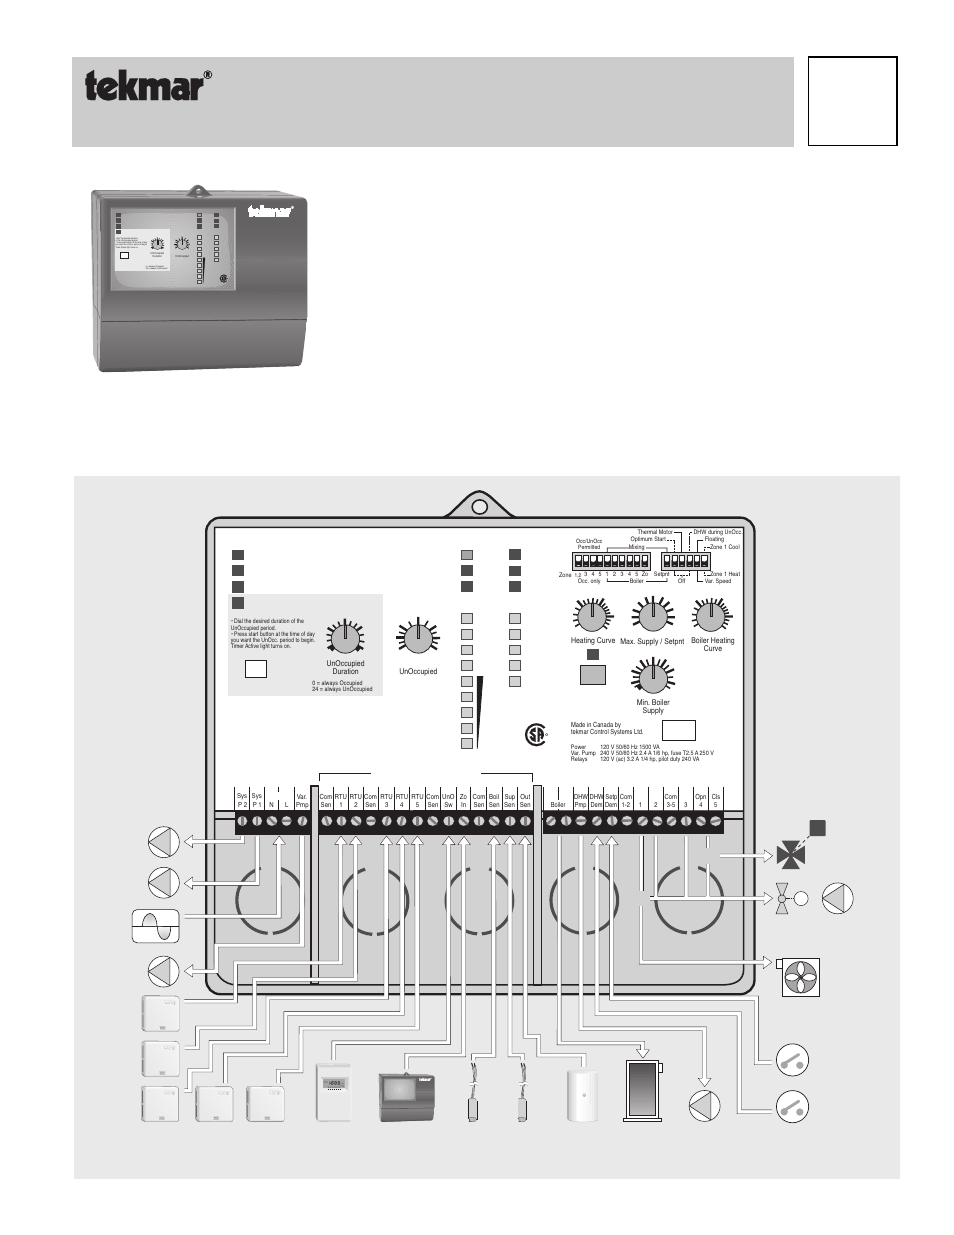 tekmar wiring diagram tekmar 371 house control user manual | 20 pages wiring diagram 2010 e 150